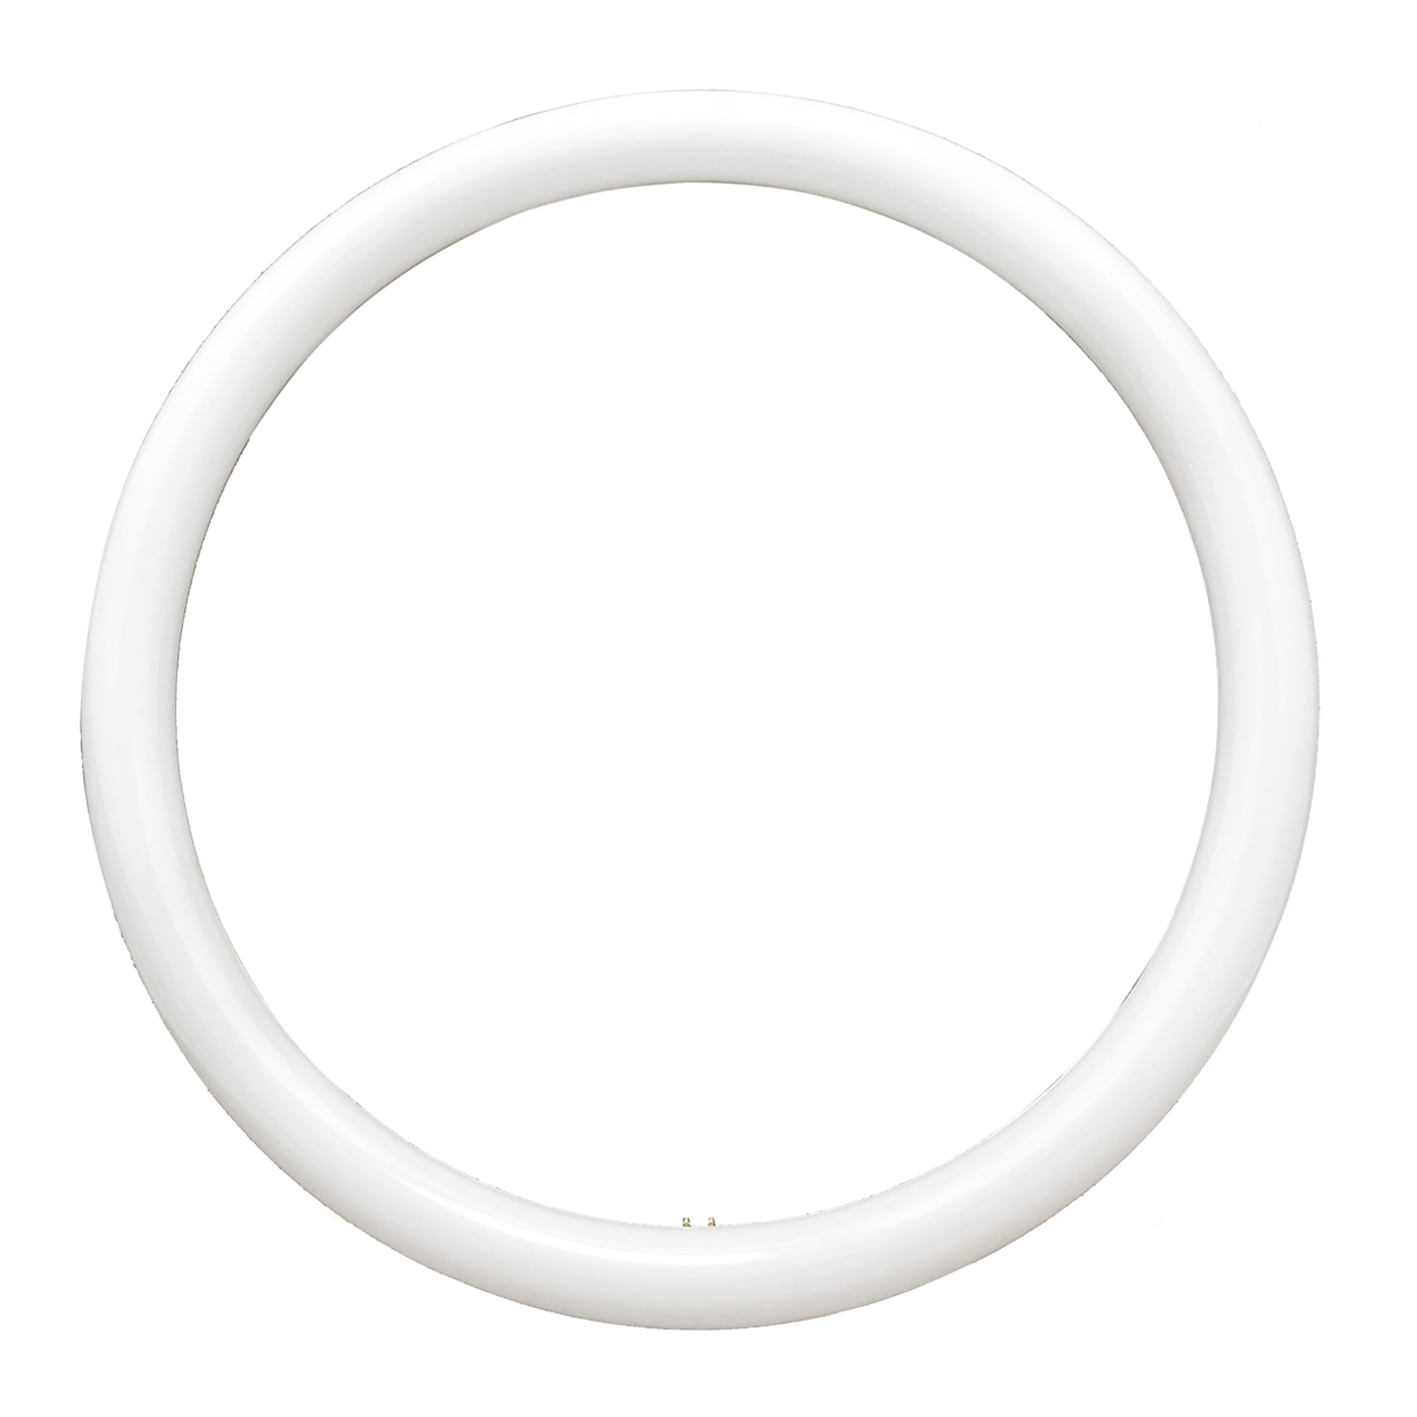 Circolina LED Circular Tube T9 G10q 32 w diameter of 400 mm T9-32W